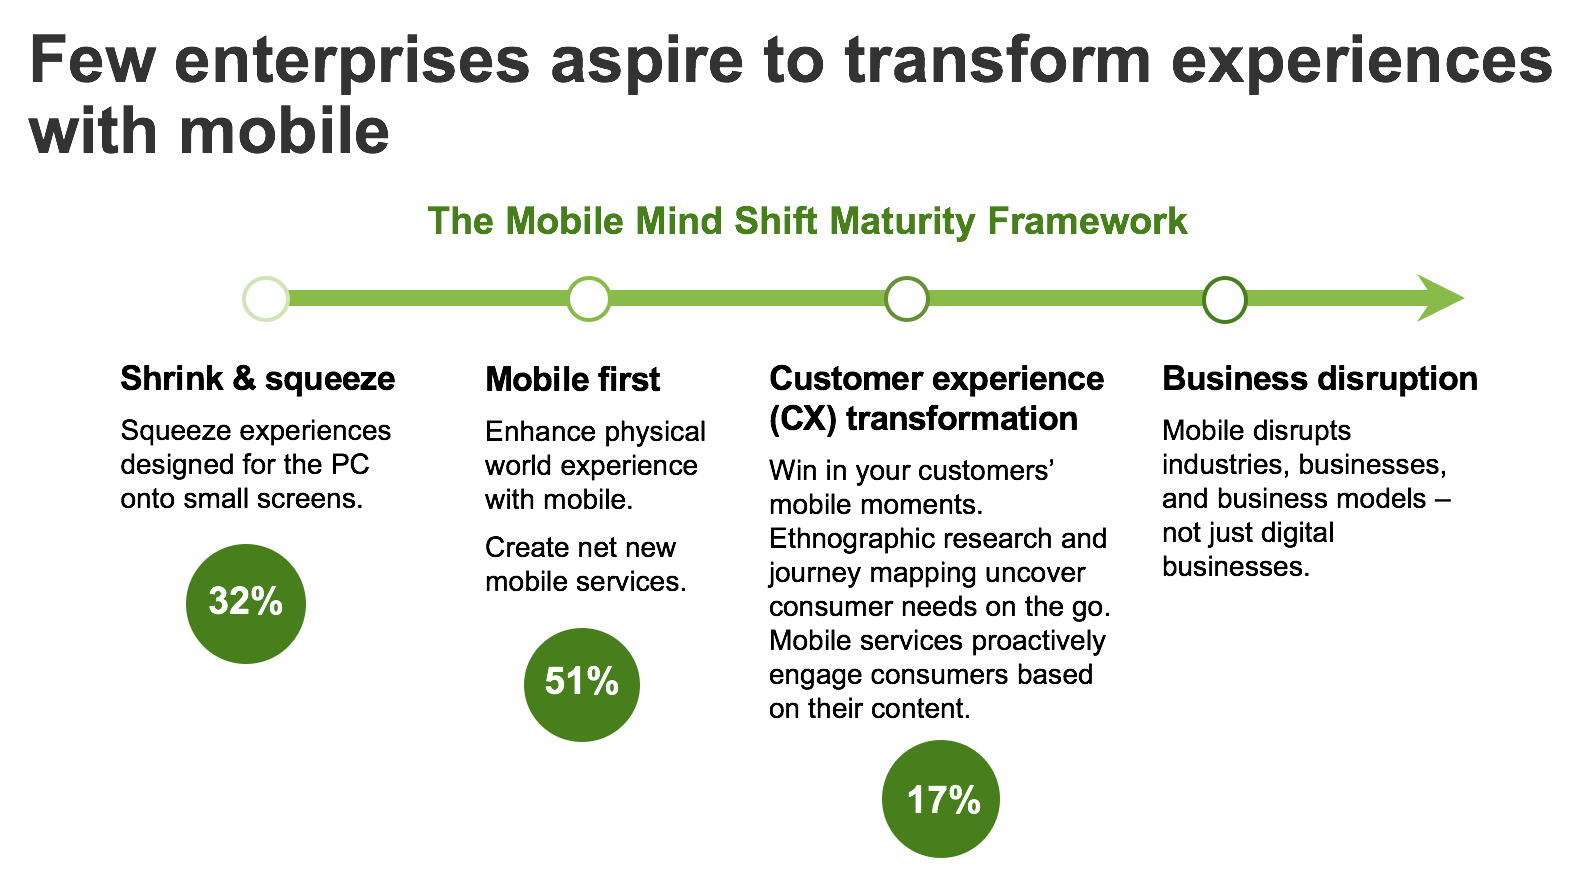 forrester-research-infographic-few-enterprises-aspire-to-transform-experiences-with-mobile